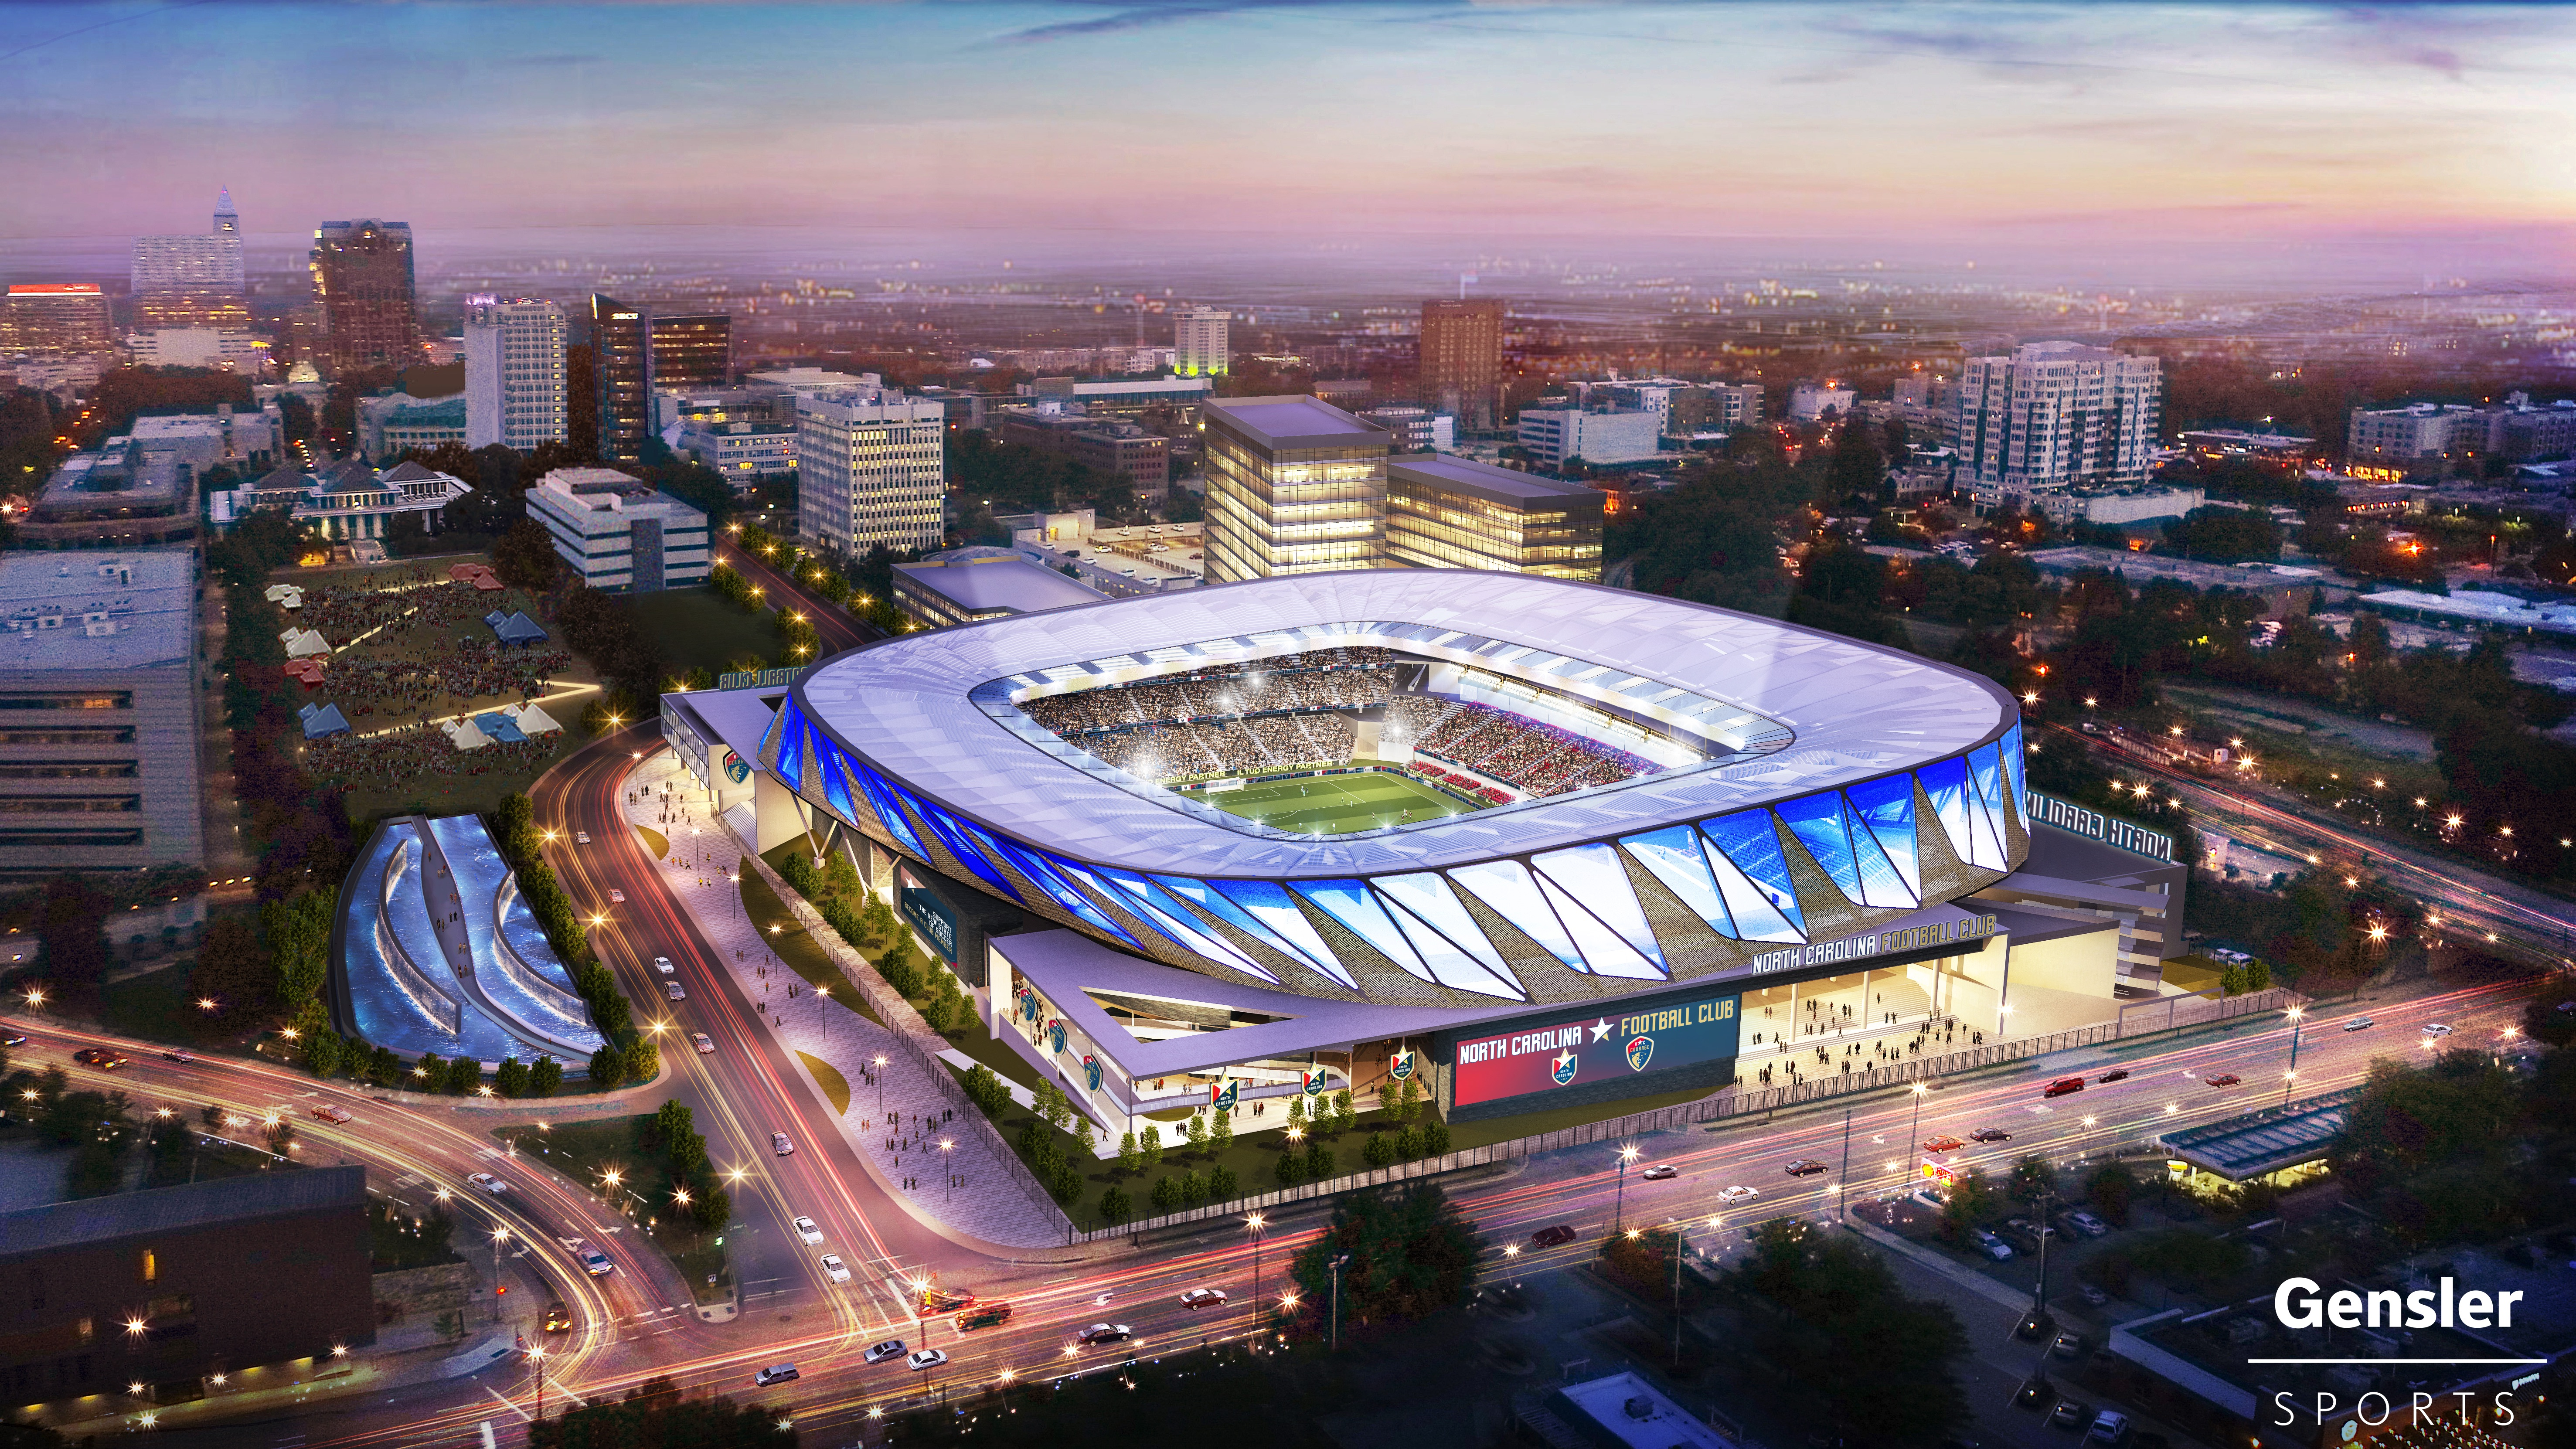 Mls Stadium Plans For Charlotte Raleigh About To Flop Carolina